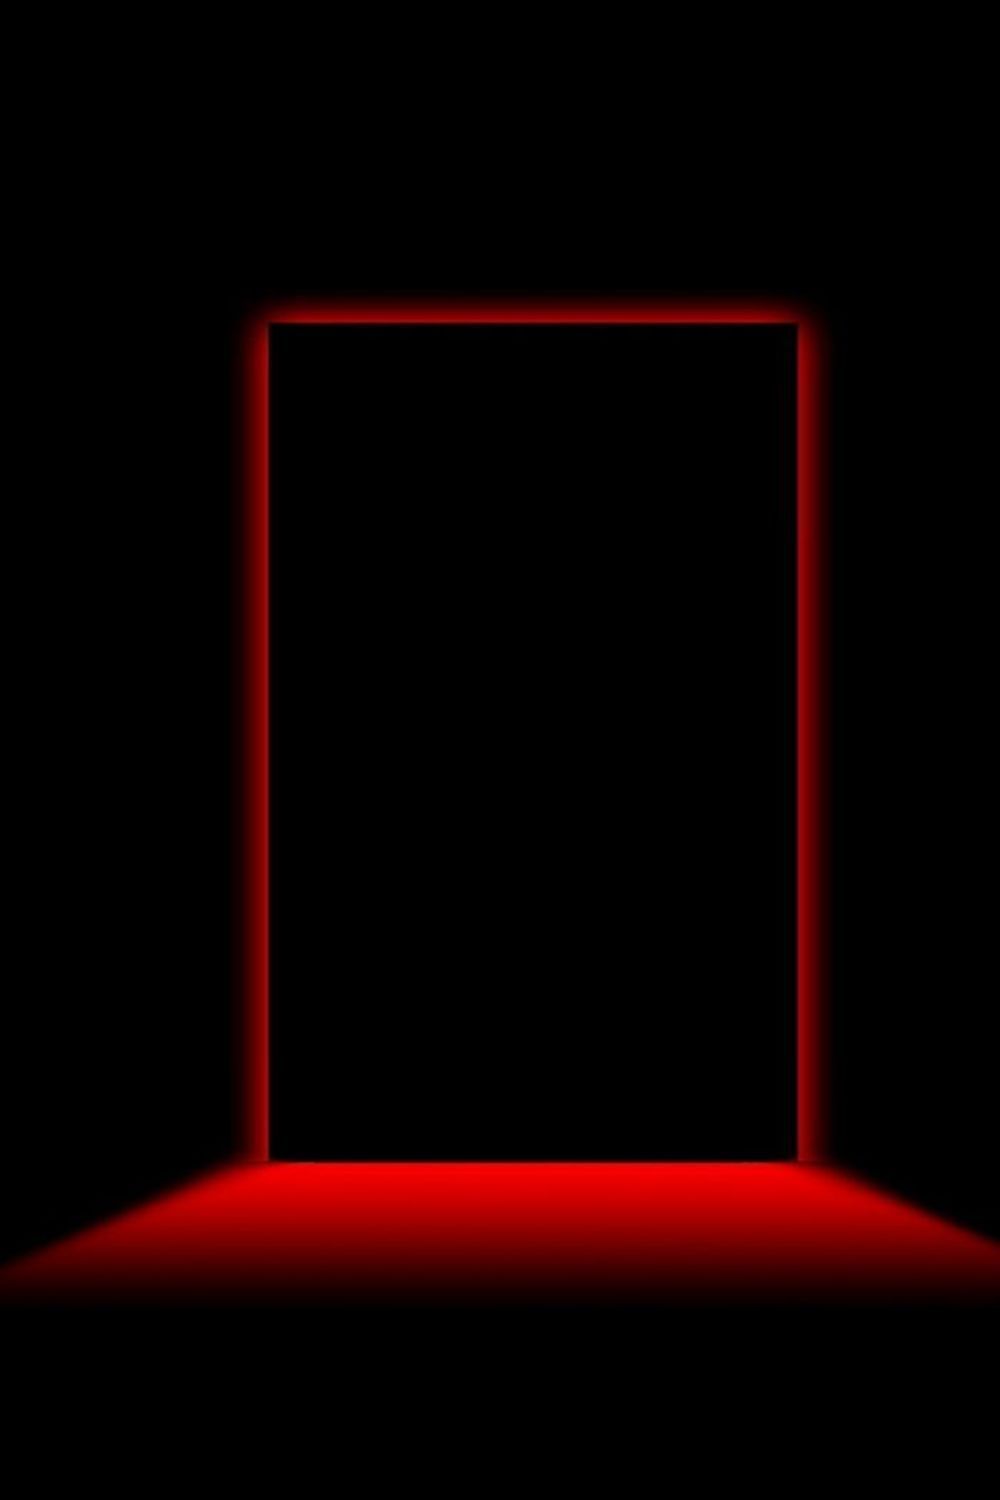 Black Neon Wallpaper IPhone